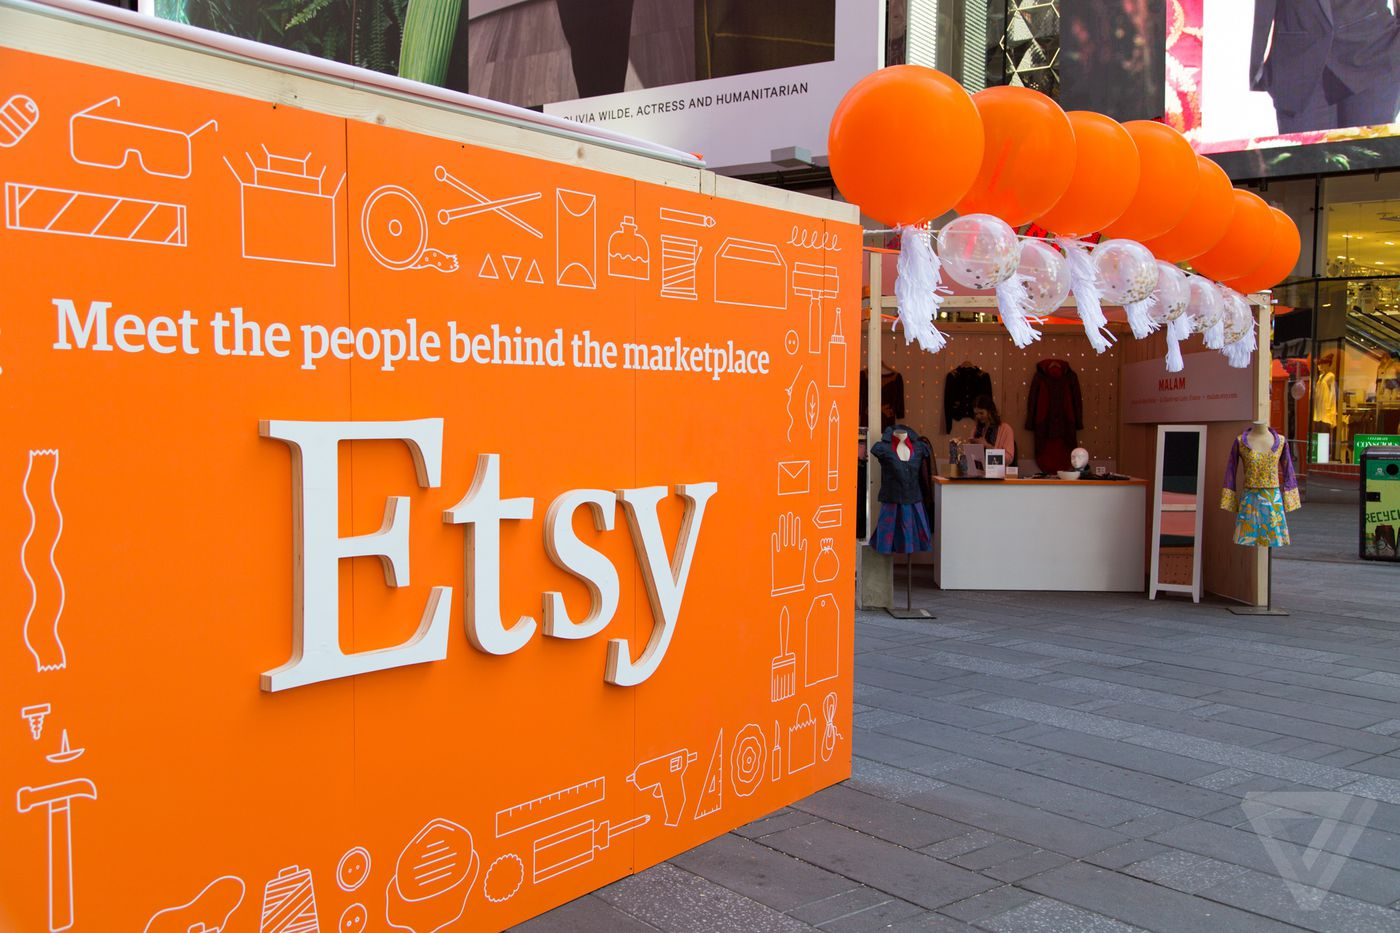 Can You Register On Etsy